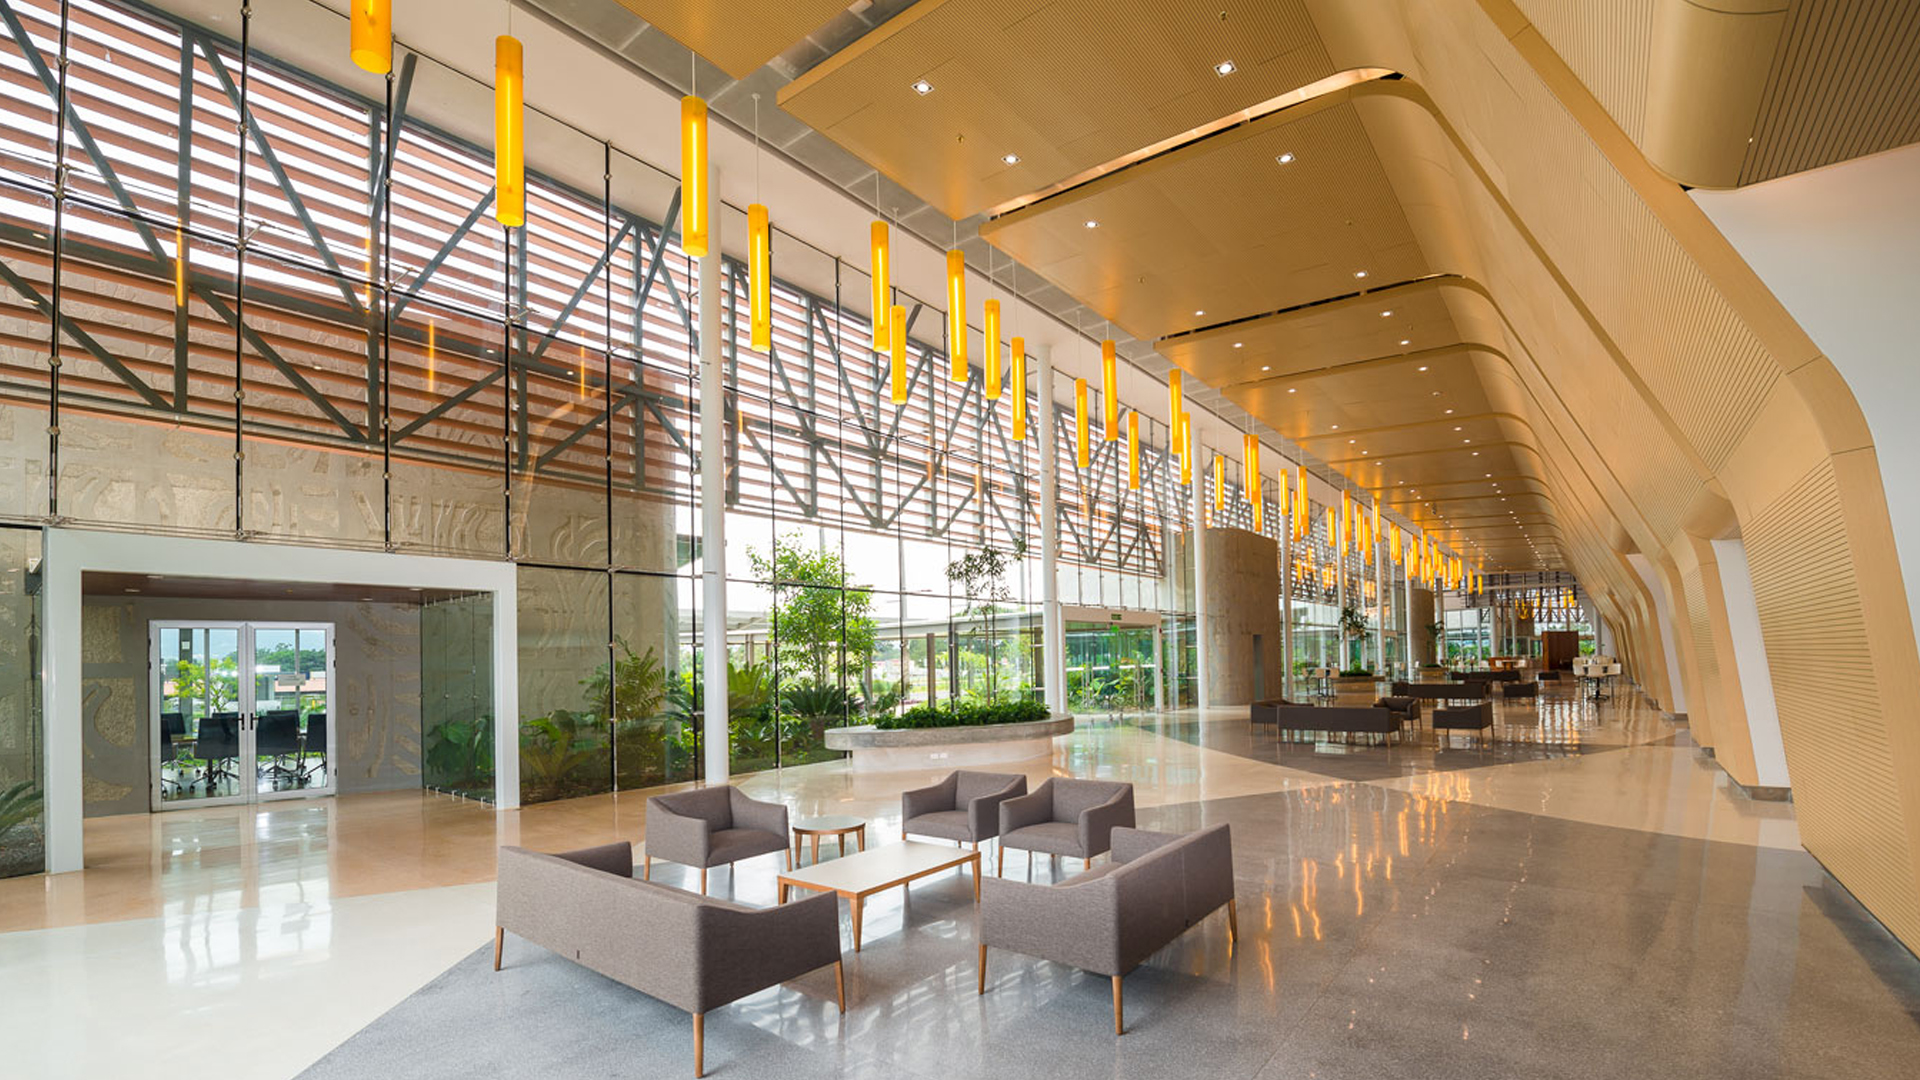 Modern finishings at the Centro de Convenciones, Costa Rica